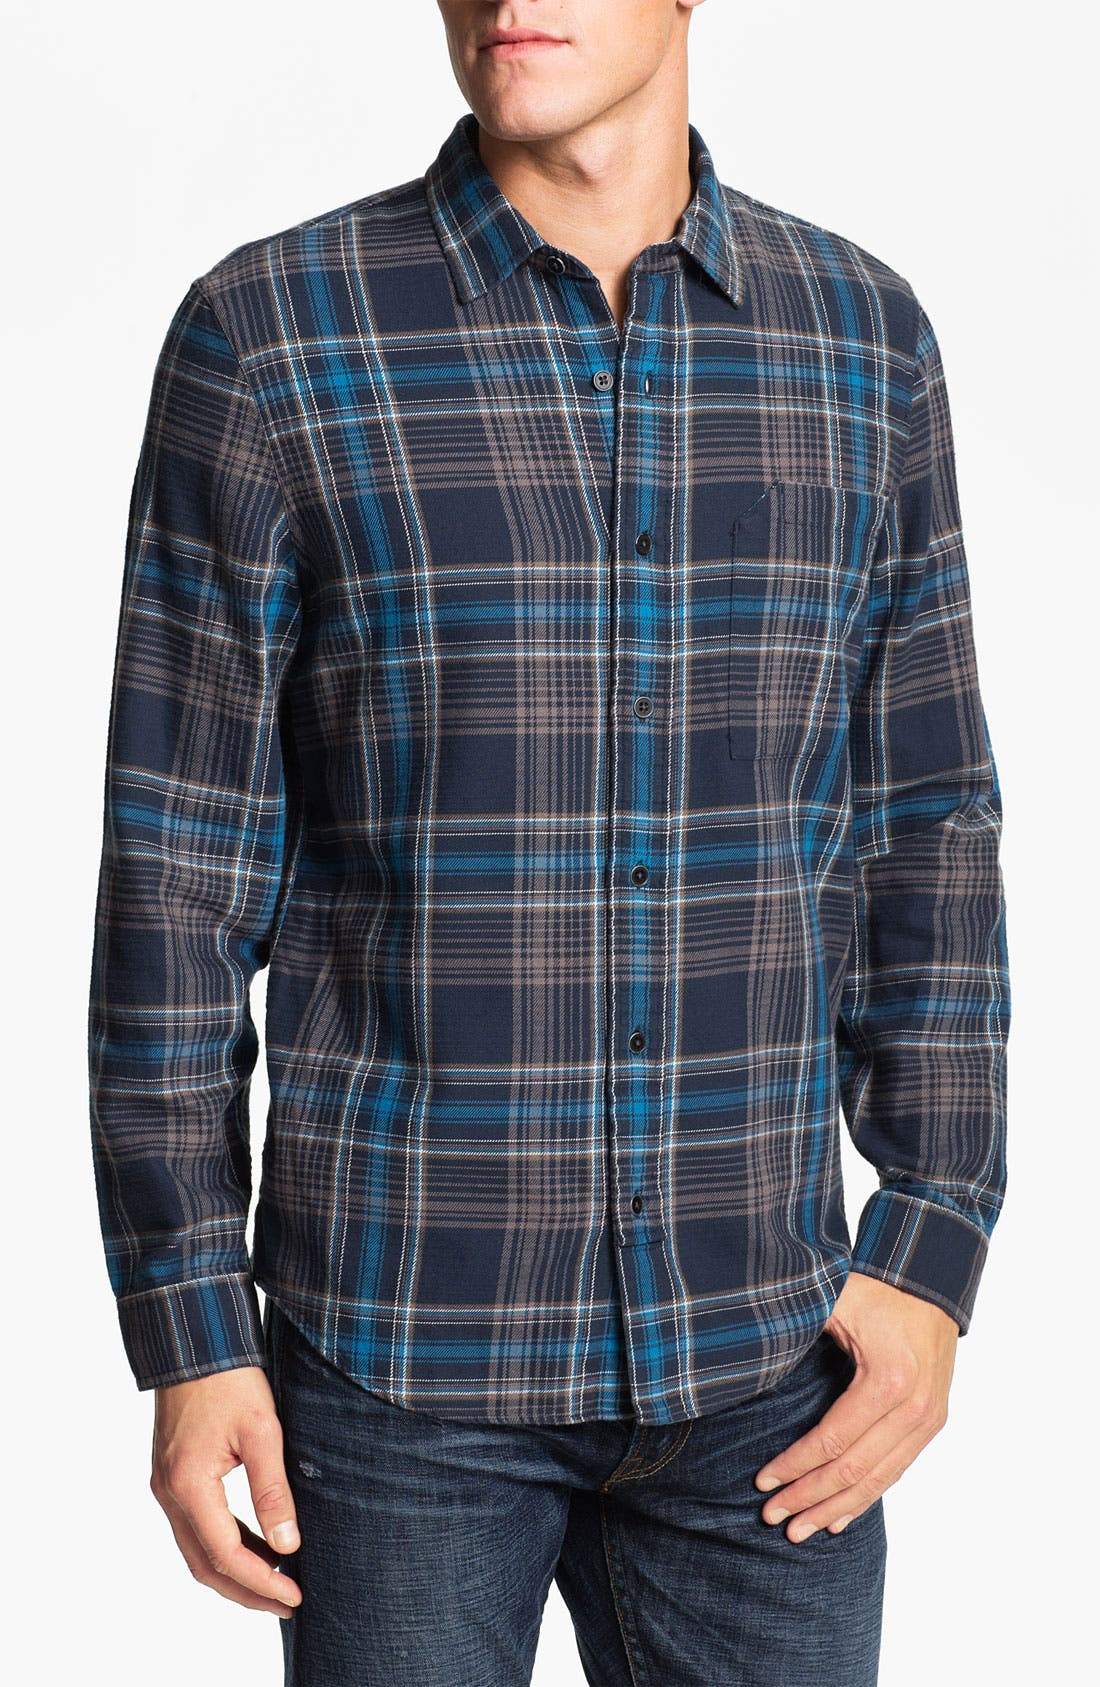 Alternate Image 1 Selected - R44 Rogan Standard Issue Flannel Work Shirt